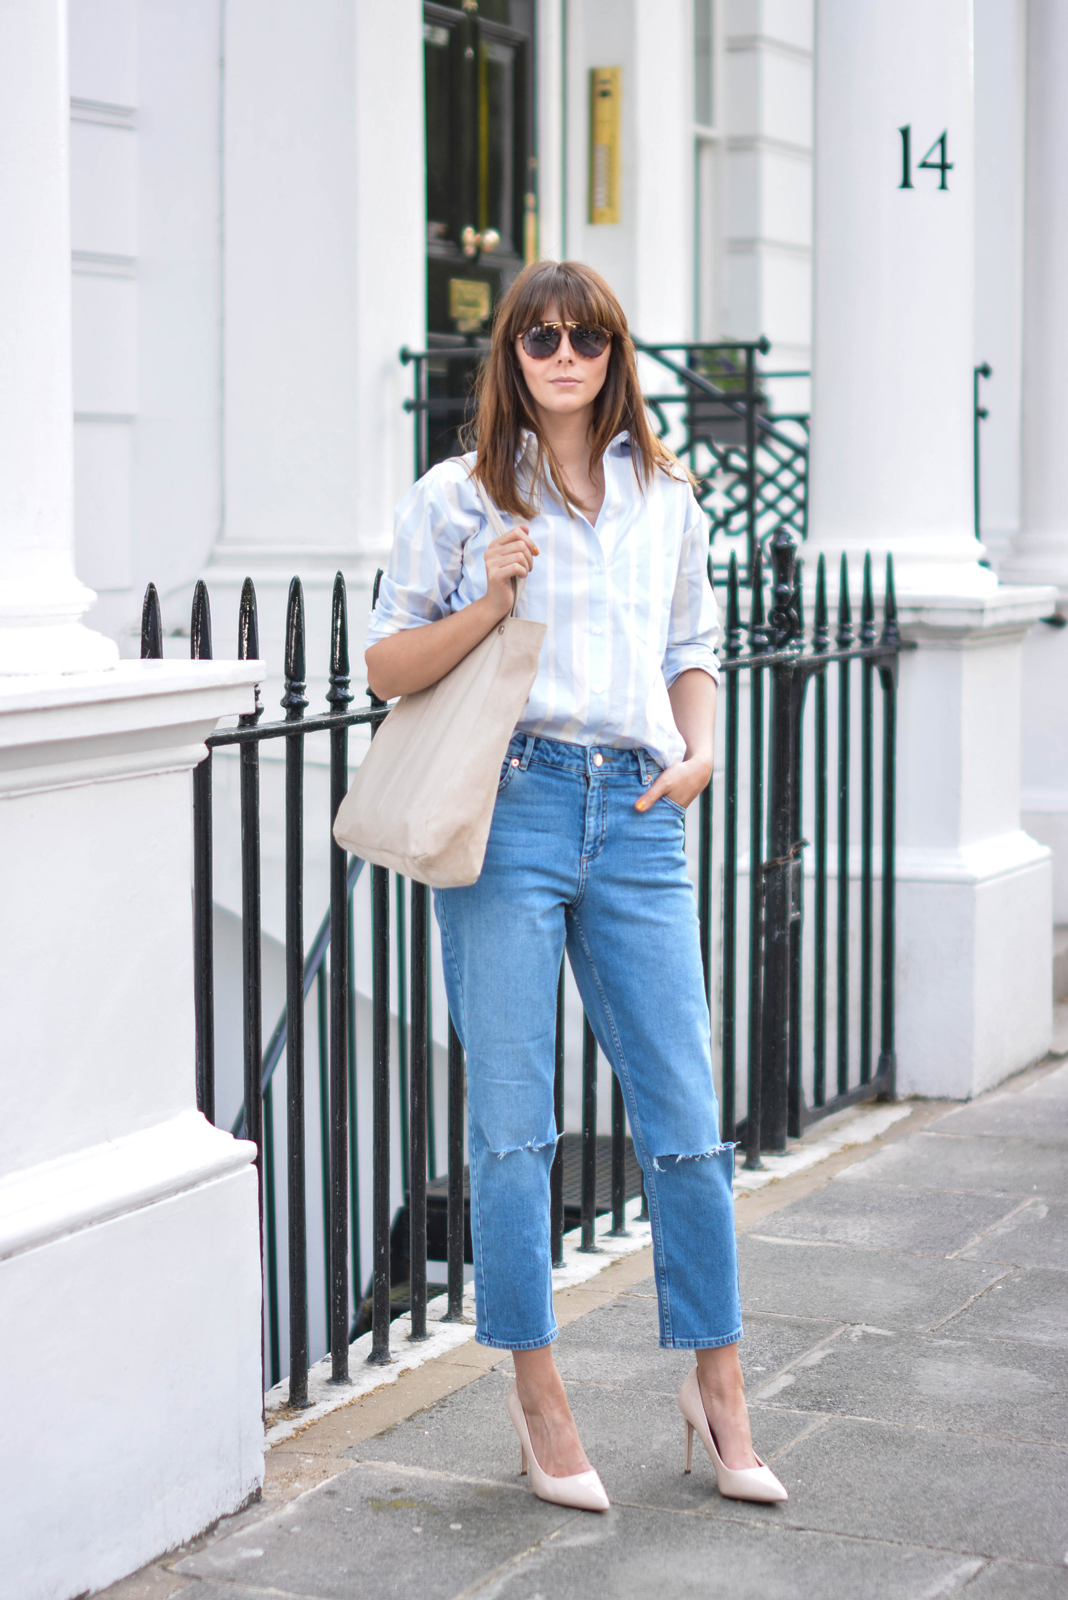 EJSTYLE - Emma Hill wears ASOS Thea girlfriend jeans with ripped knees, striped boyfriend shirt, leather suede nude shopper tote bag, nude patent pointed toe court shoes, aviator sunglasses, OOTD, street style